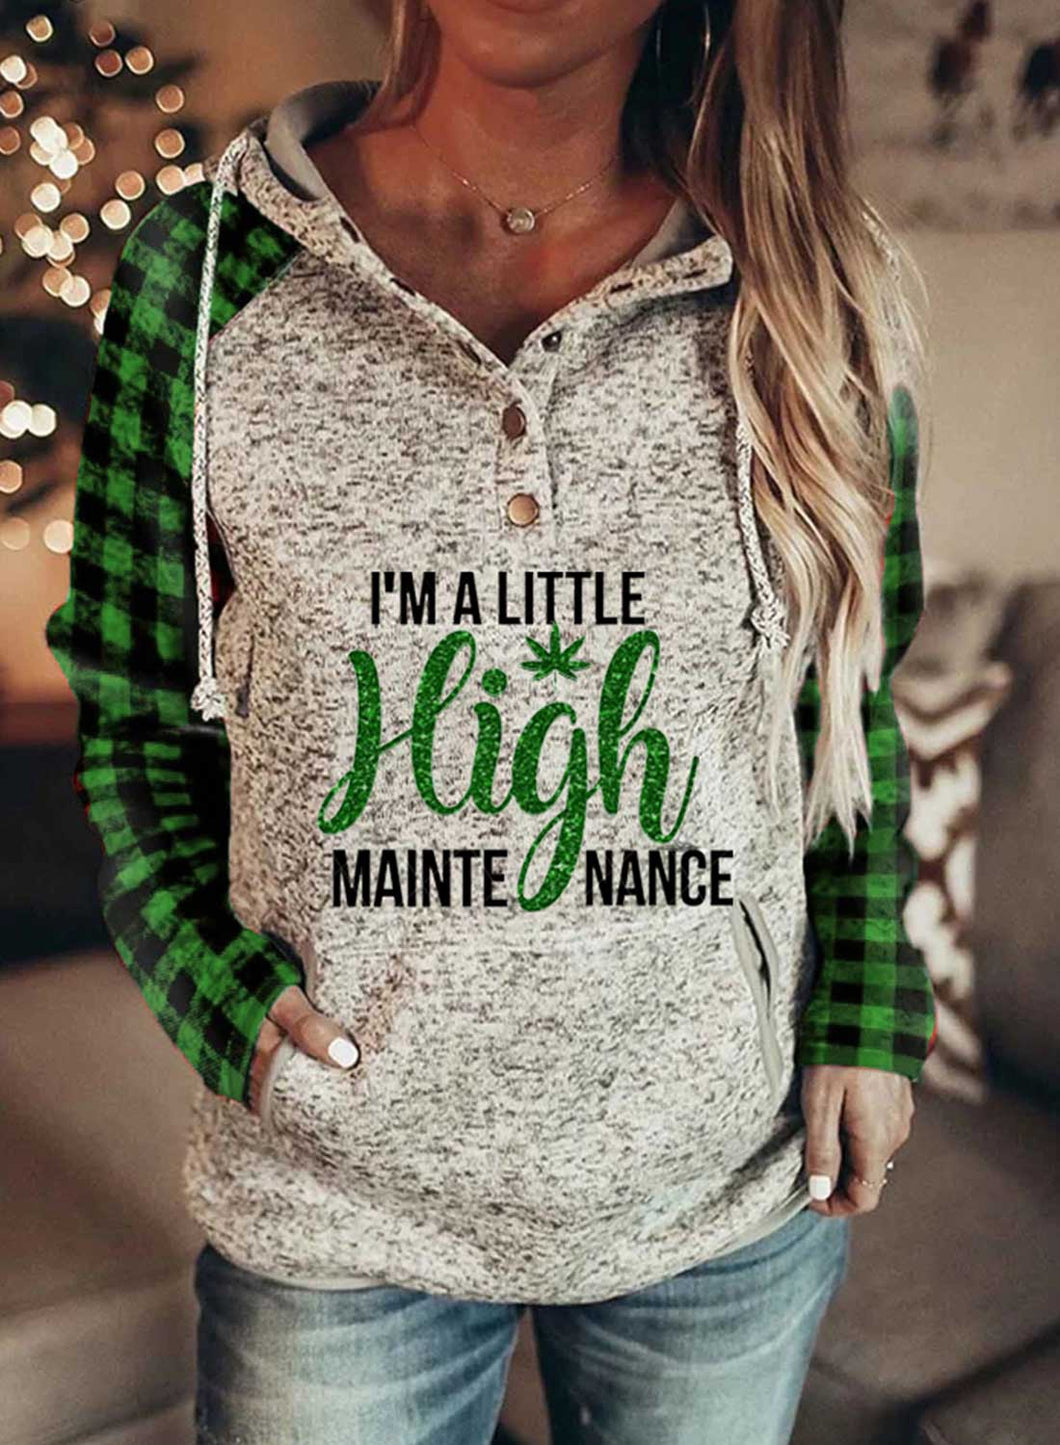 I'm Little High Maintenance Women's Hoodies Drawstring Long Sleeve Plaid Hoodies With Pockets